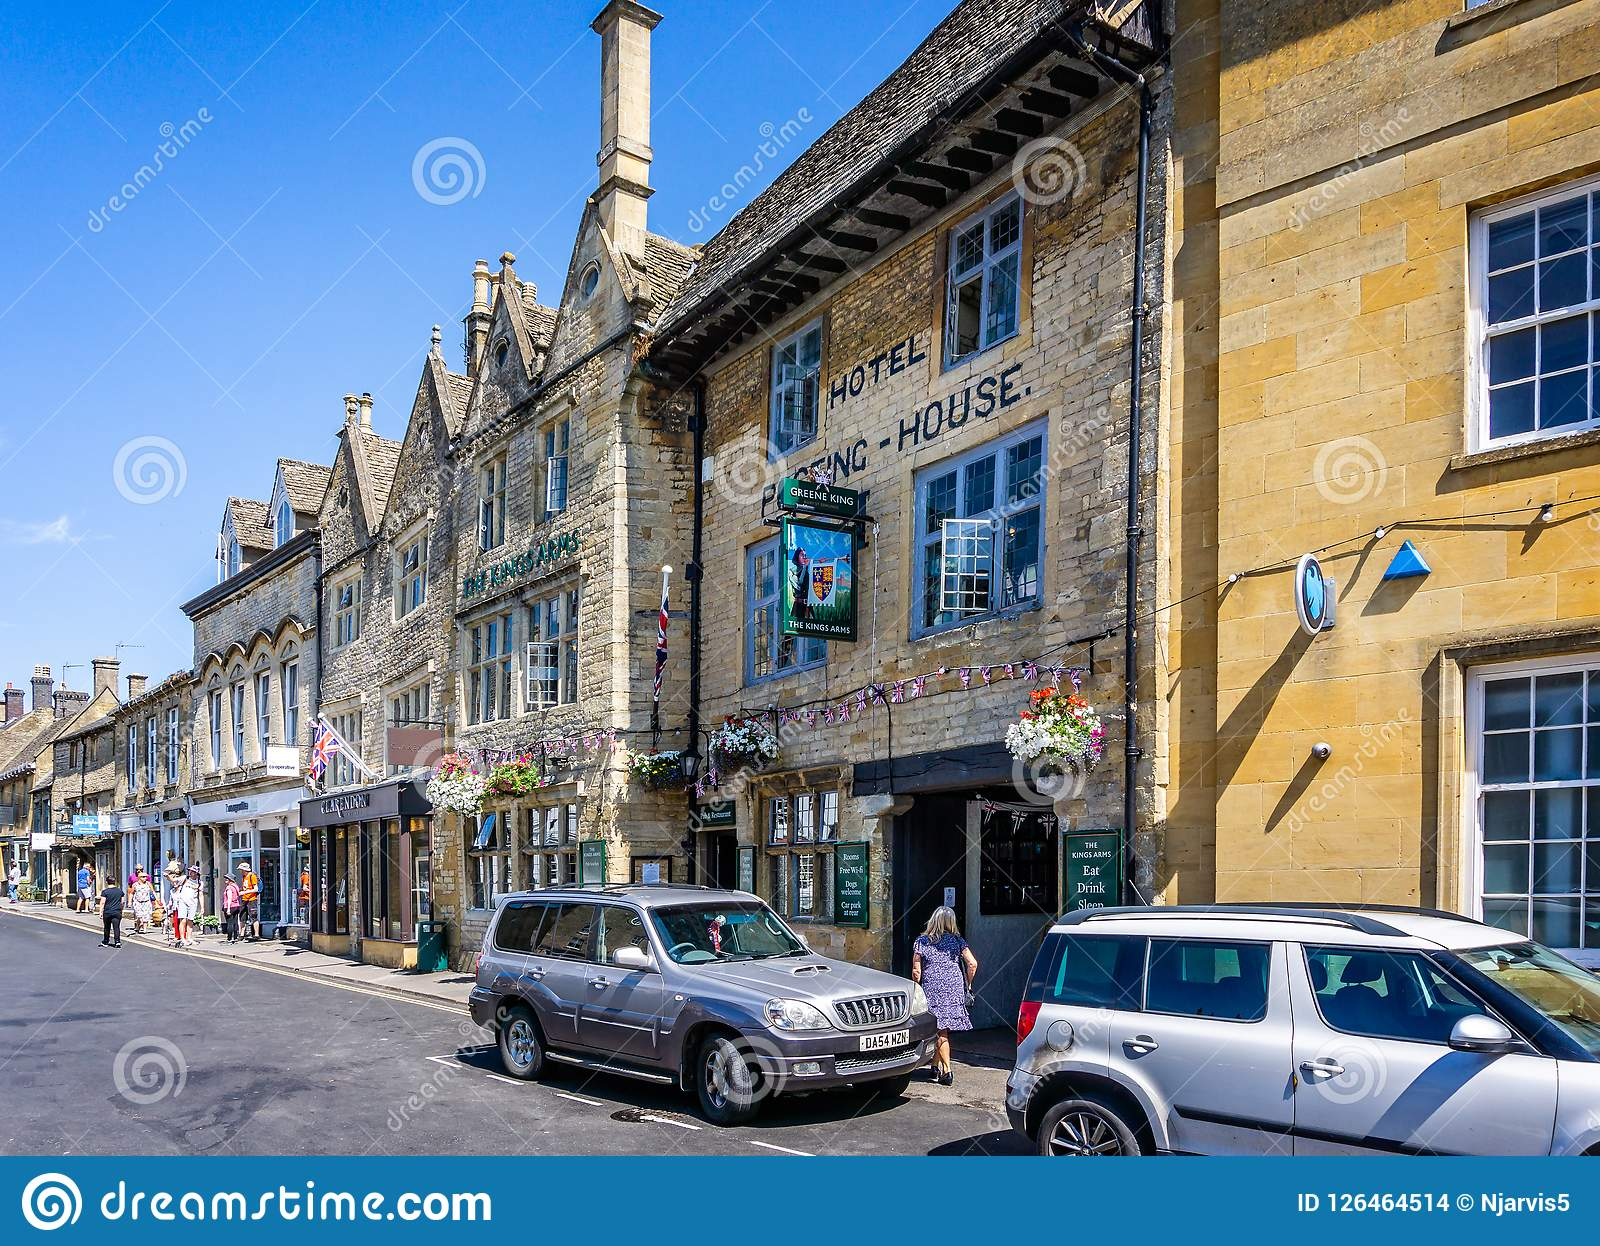 Kings Arms historic Inn in historic cotswold town of Stow on the Wold